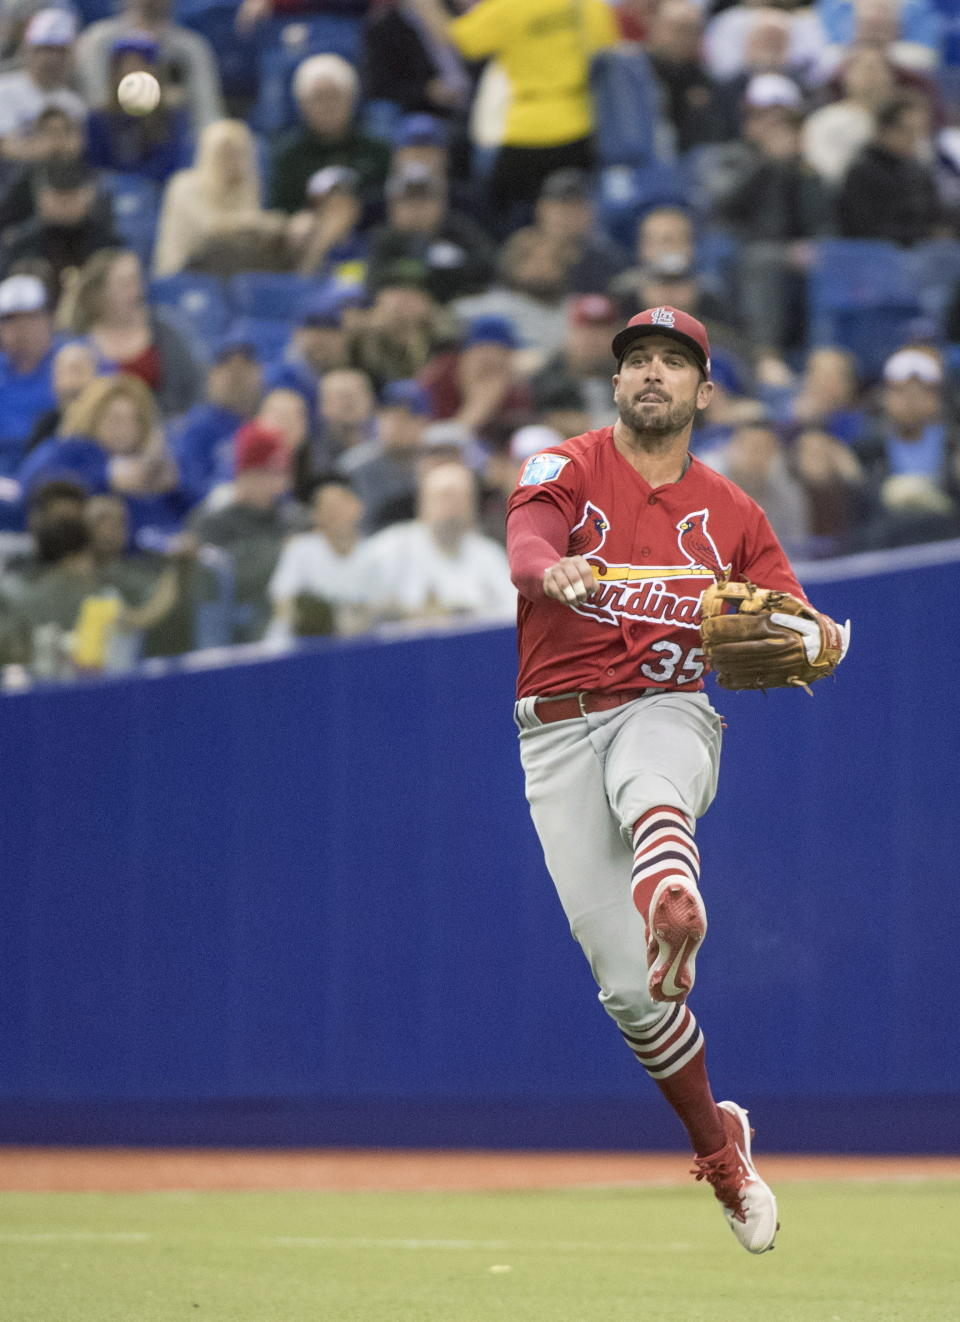 St. Louis Cardinals shortstop Greg Garcia throws out Toronto Blue Jays' Teoscar Hernandez at first during the seventh inning of a baseball exhibition game Tuesday, March 27, 2018, in Montreal. (Paul Chiasson/The Canadian Press via AP)